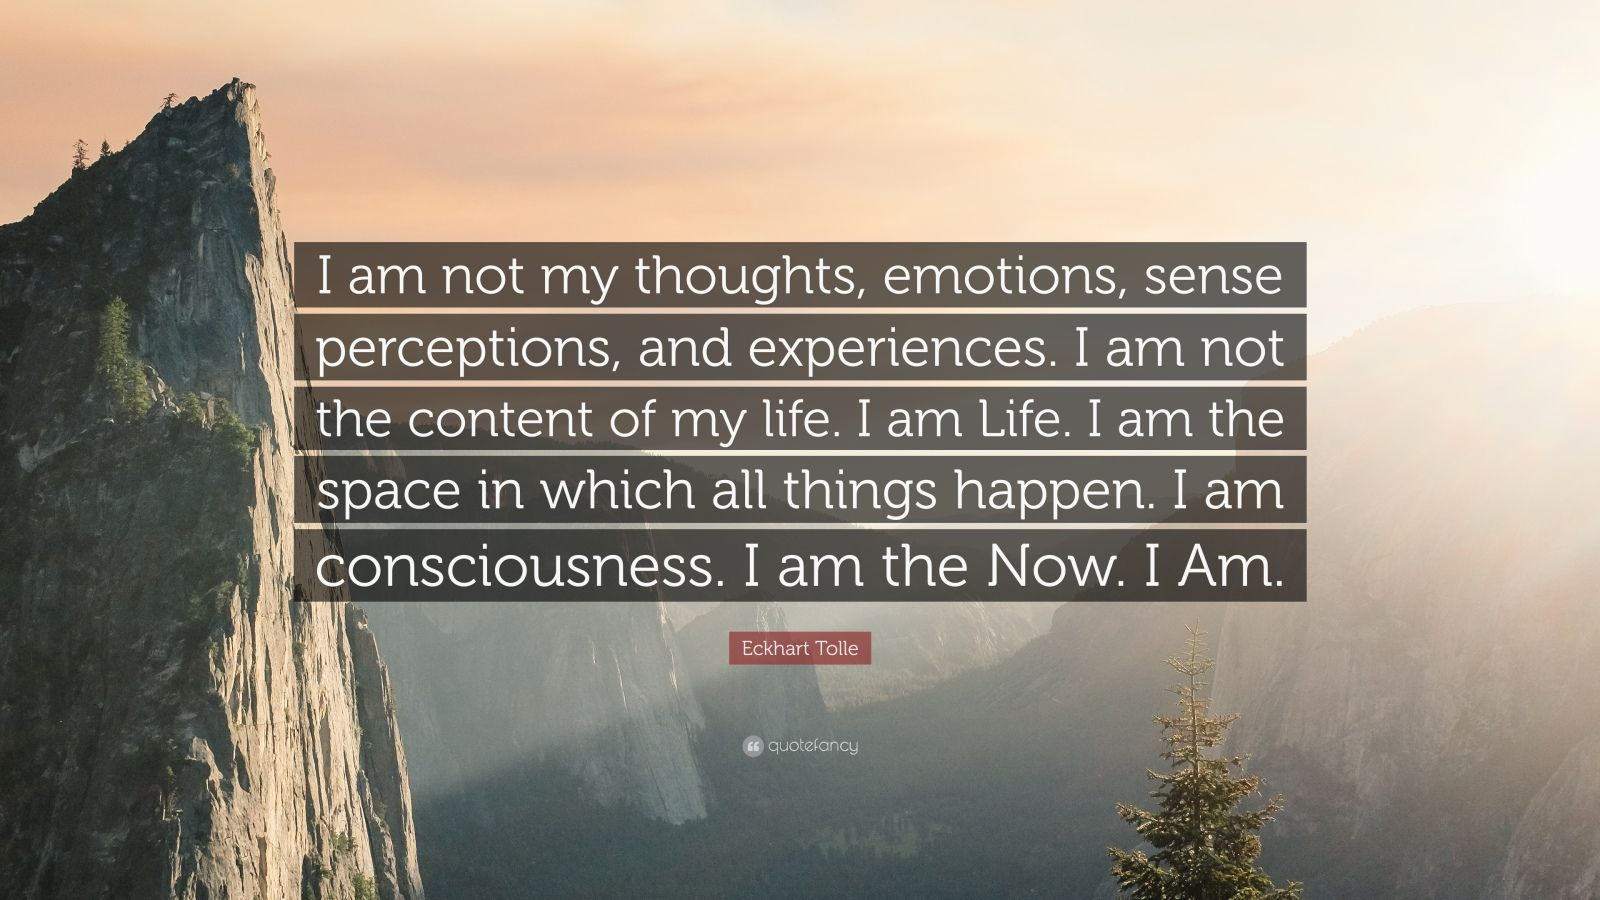 """Eckhart Tolle Quote: """"I am not my thoughts, emotions, sense perceptions, and experiences. I am not the content of my life. I am Life. I am the space in which all things happen. I am consciousness. I am the Now. I Am."""""""